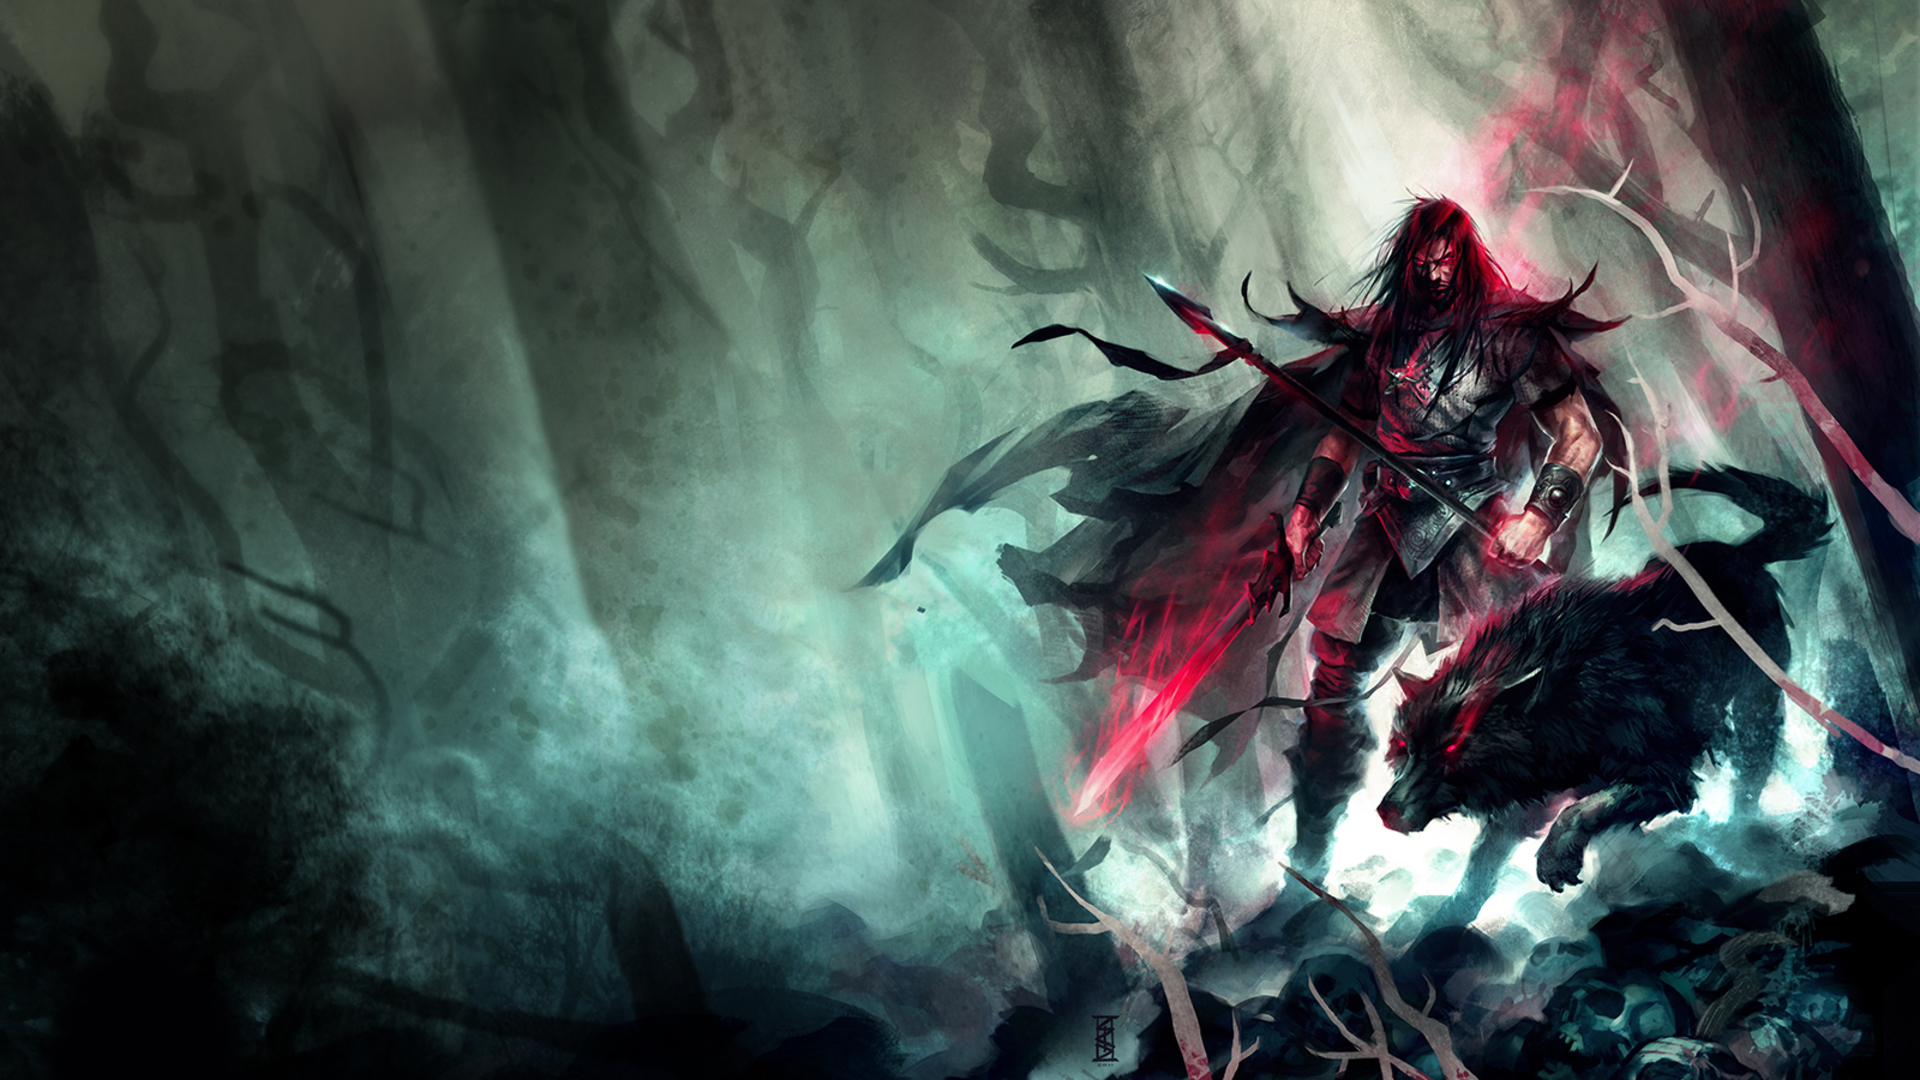 Warrior Full HD Wallpaper And Background Image